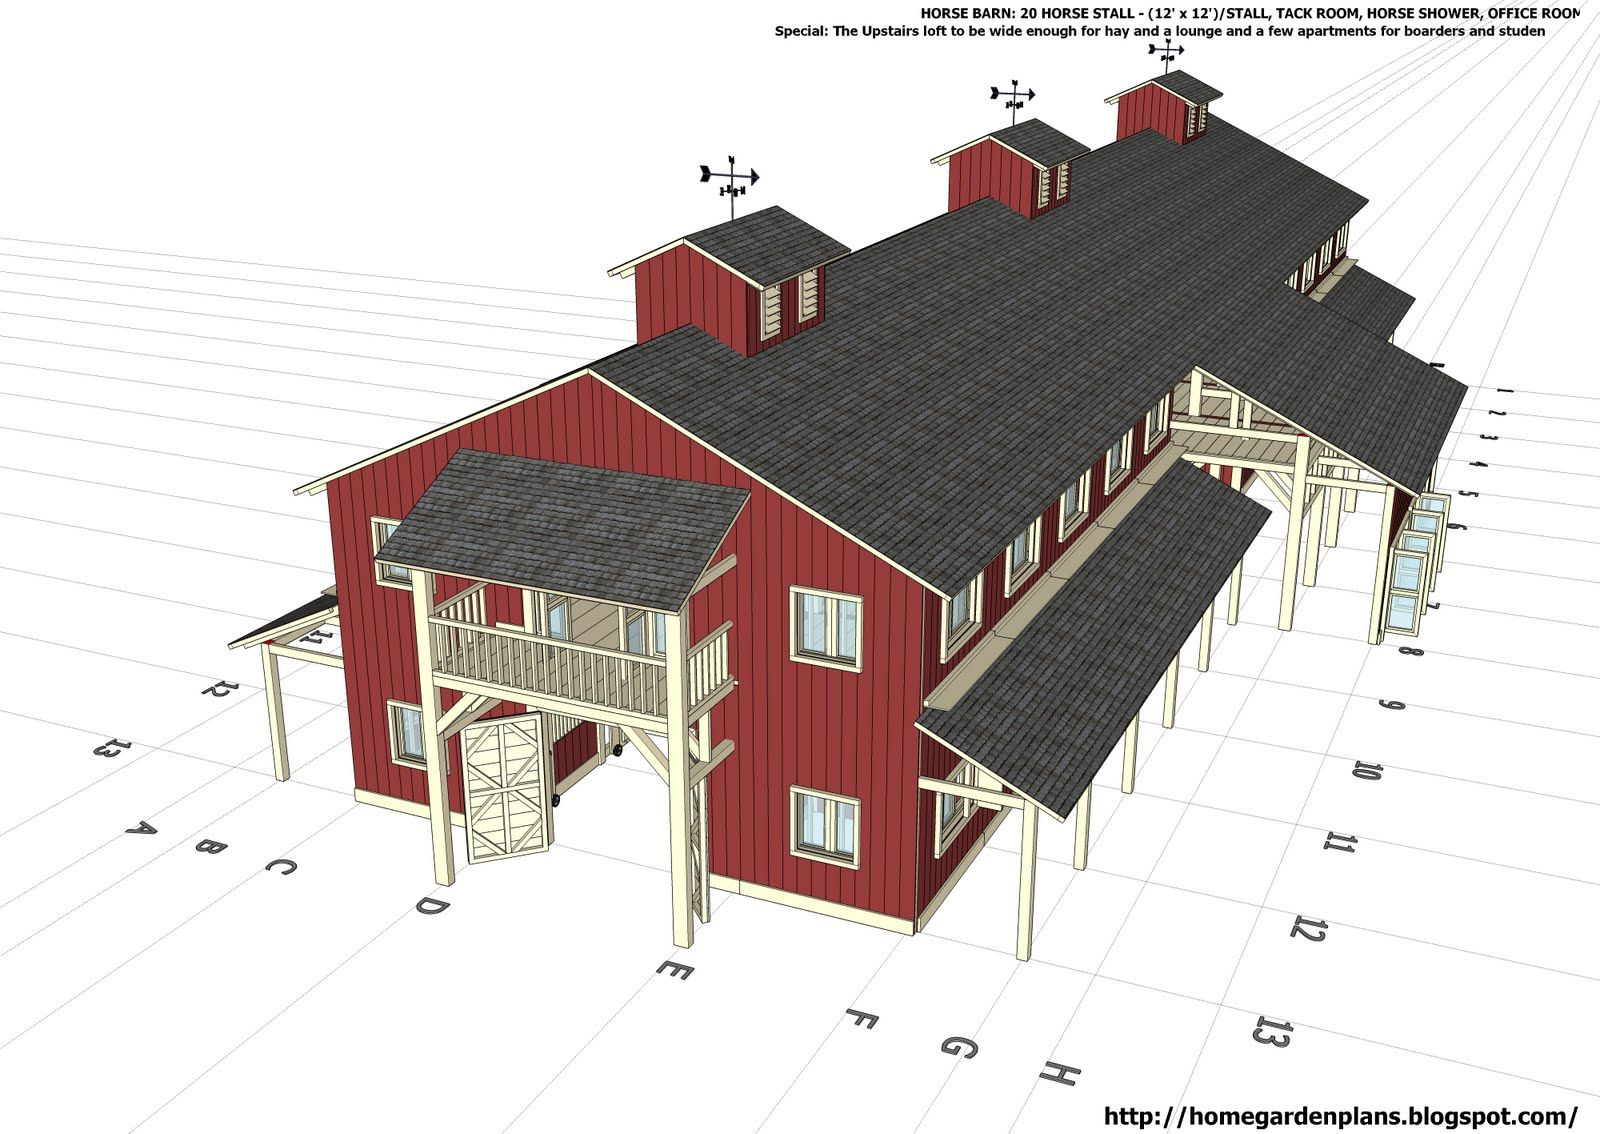 barn plans stable designs building plans for horse - HD1600×1134